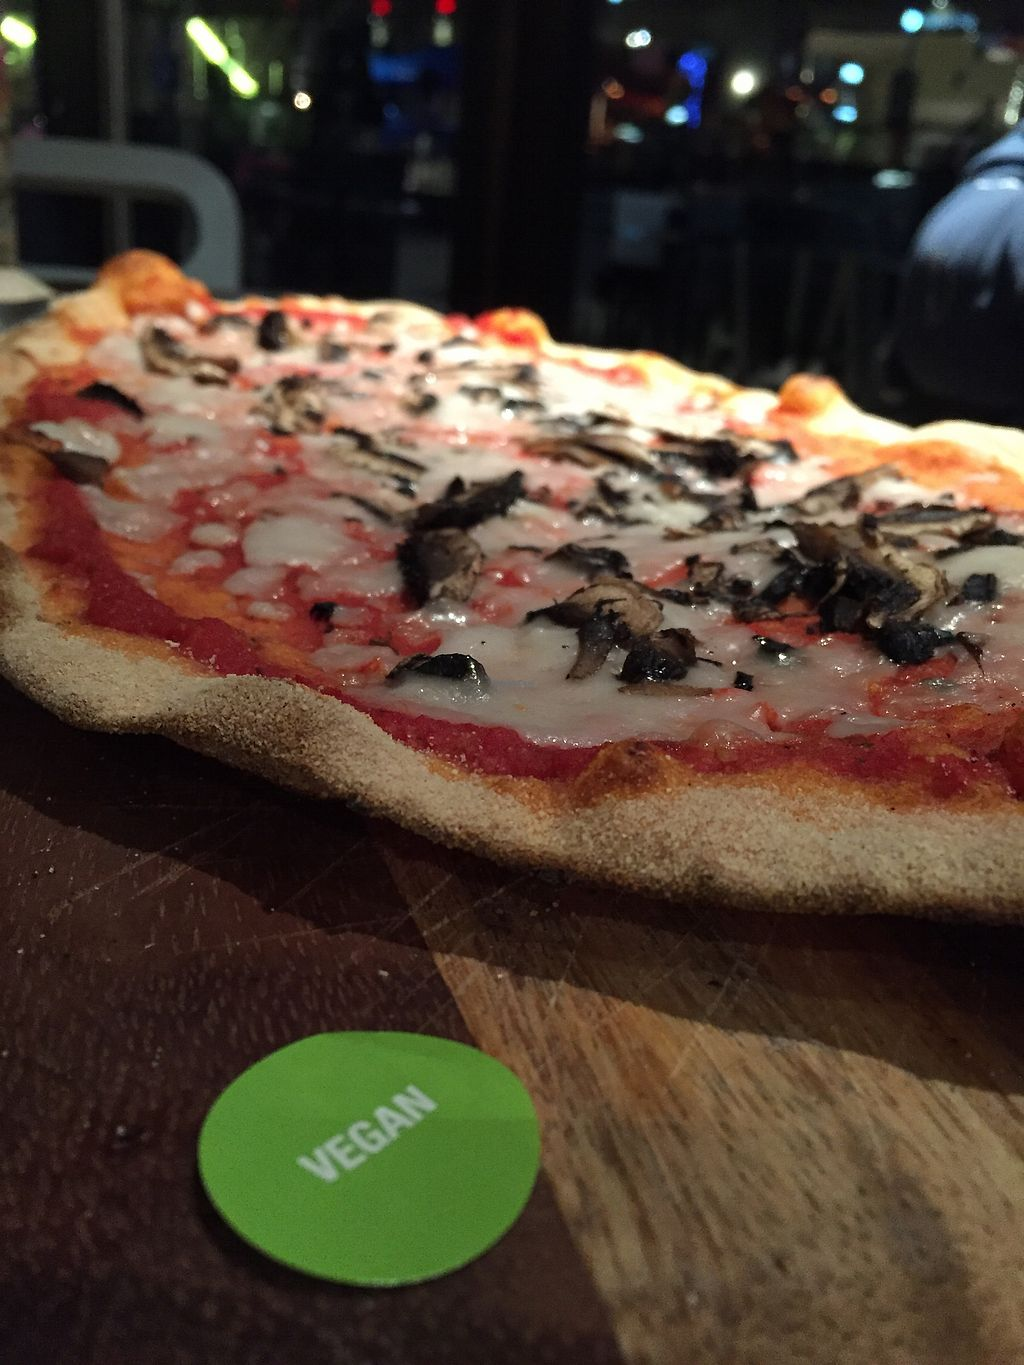 """Photo of Zizzi - Leopold Square  by <a href=""""/members/profile/hack_man"""">hack_man</a> <br/>Margherita pizza with mushrooms on smoky chilli base   <br/> March 24, 2018  - <a href='/contact/abuse/image/77569/375071'>Report</a>"""